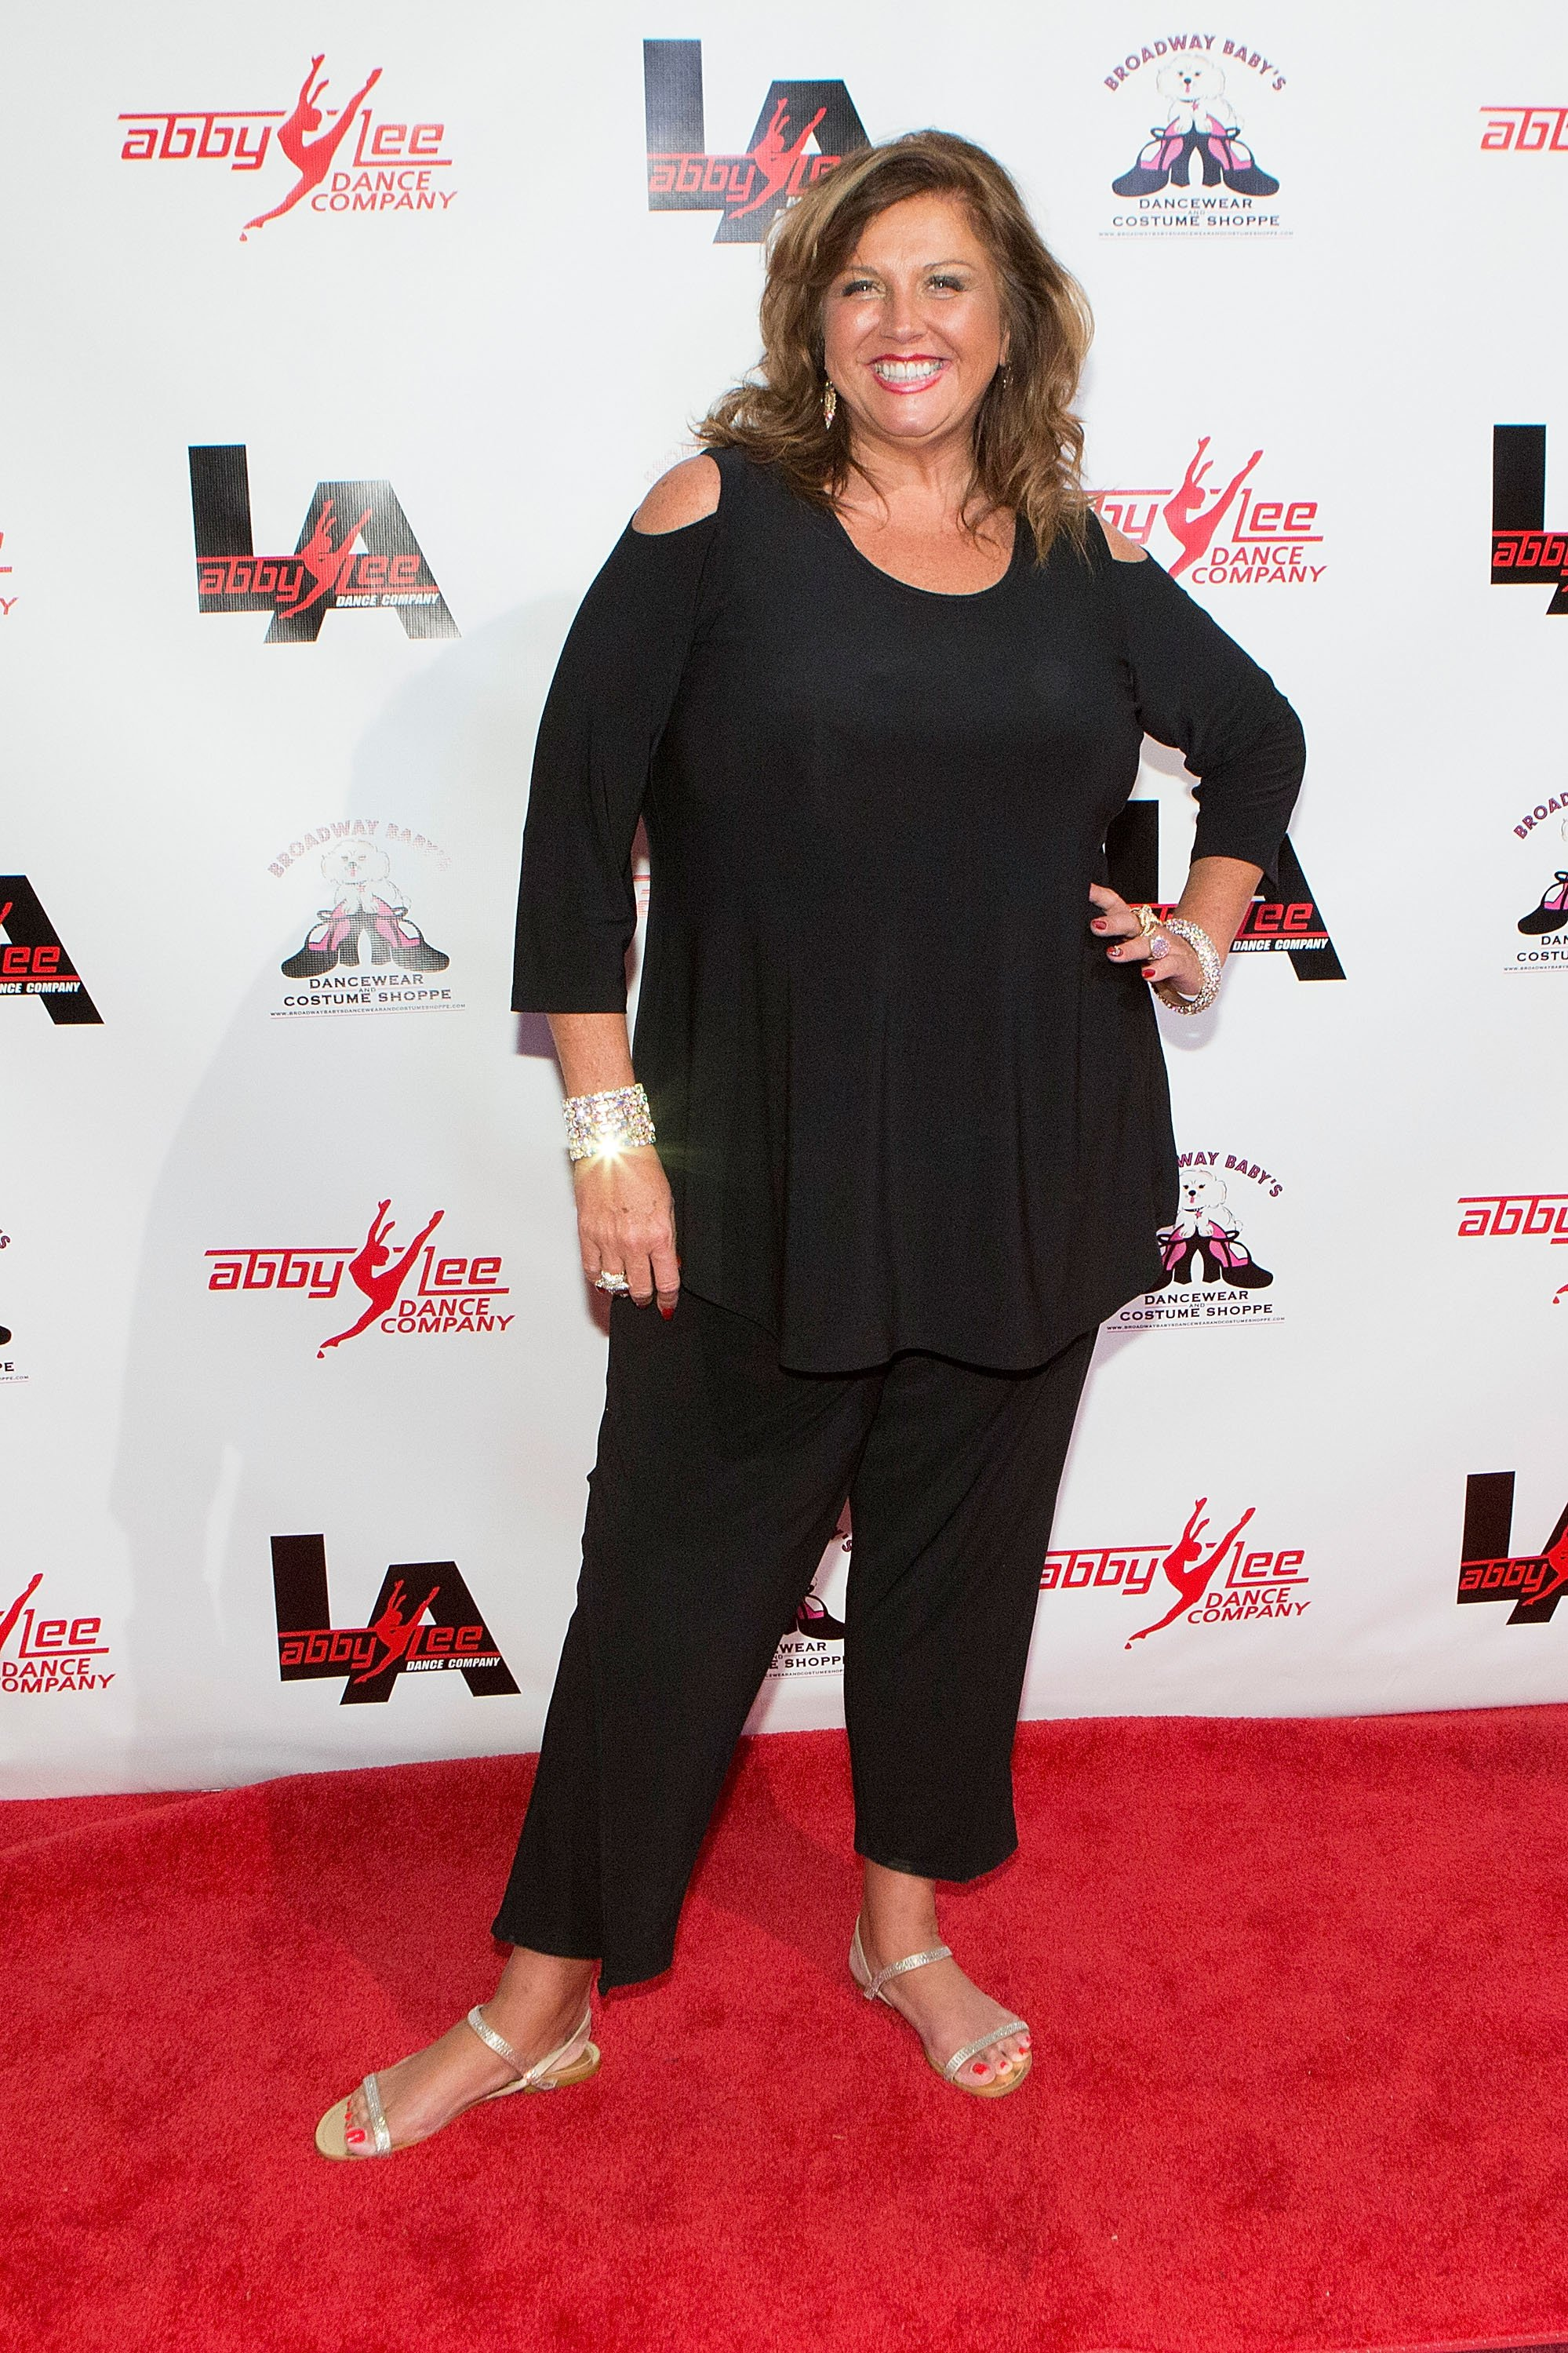 Abby Lee Miller attends 'Dance Moms' Abby Lee Dance Company LA's VIP Grand Opening at Abby Lee Dance Company LA on May 30, 2015 in Santa Monica